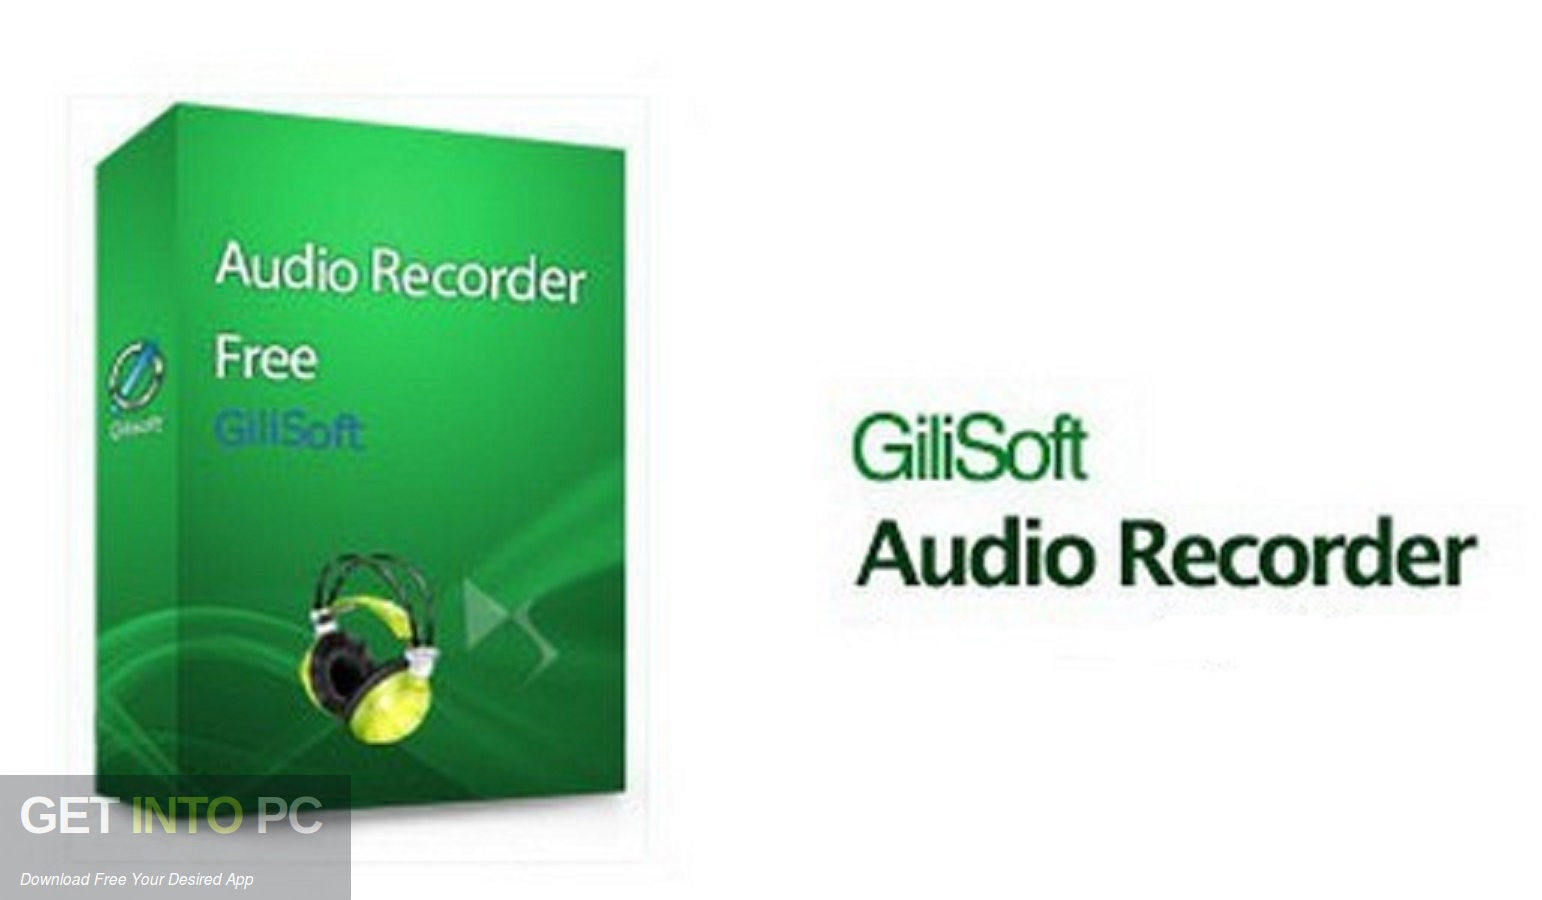 GiliSoft Audio Recorder Pro 2020 Free Download PcHippo